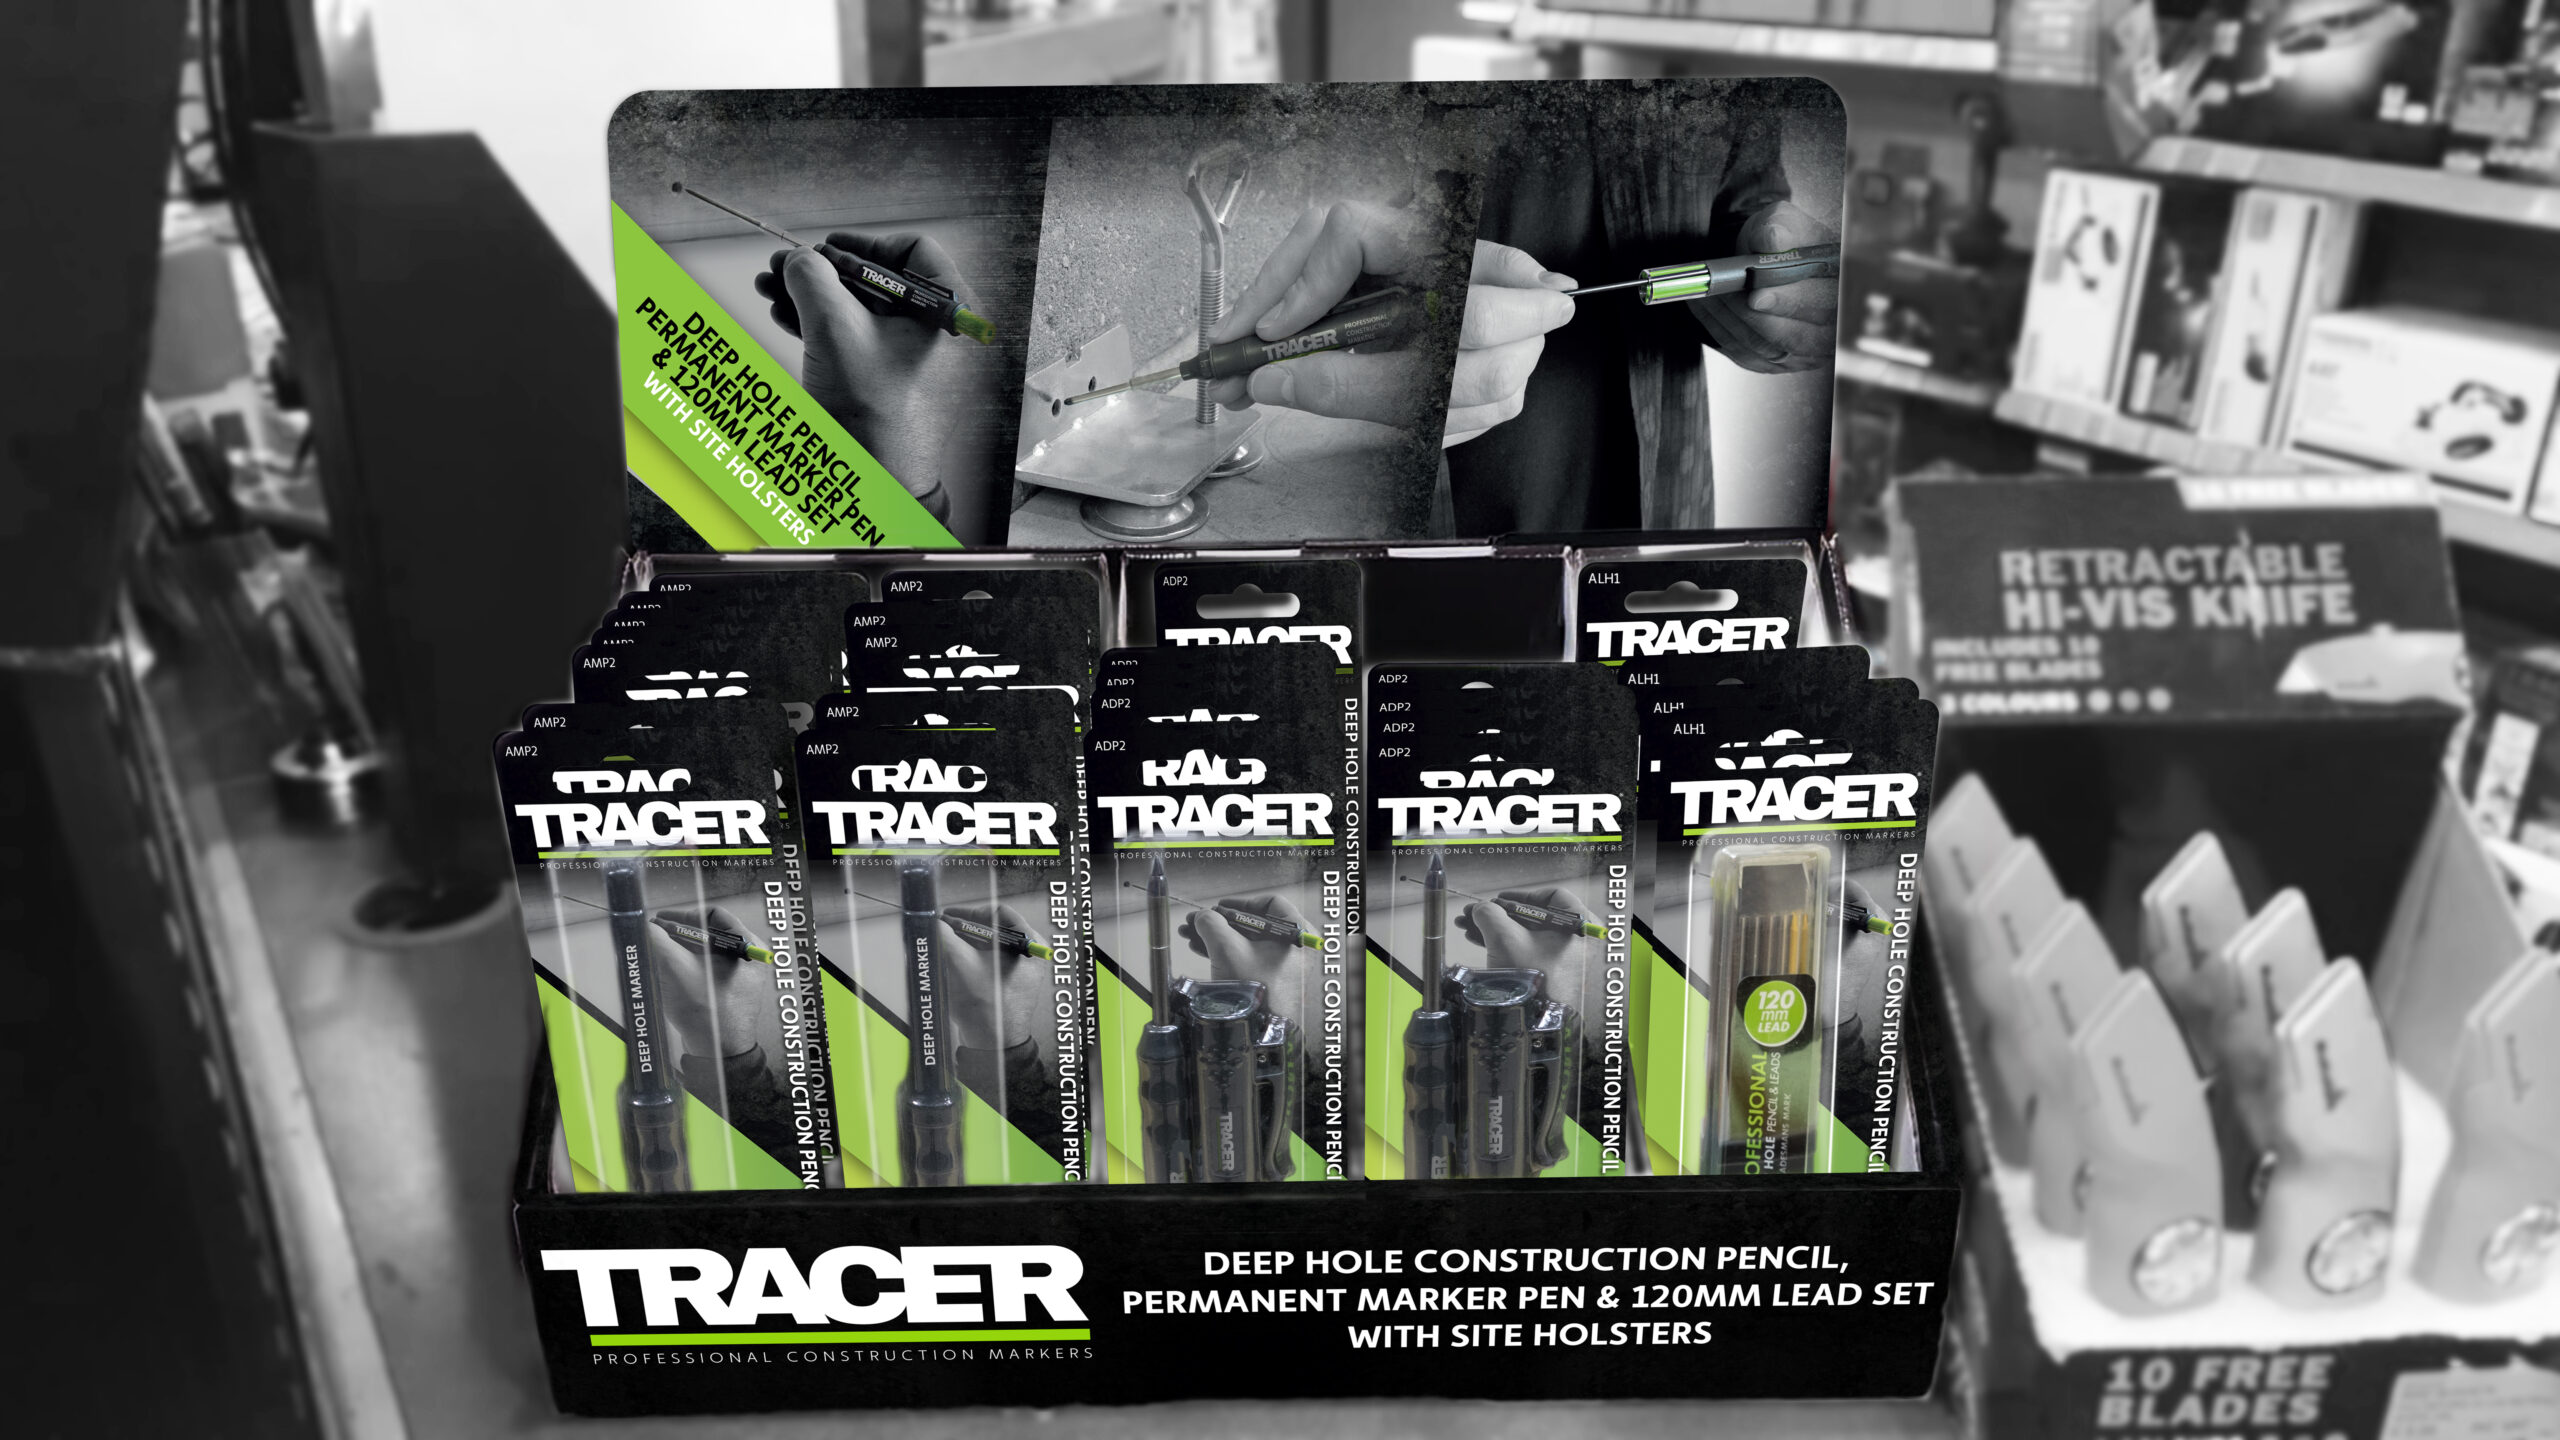 TRACER countertop packaging